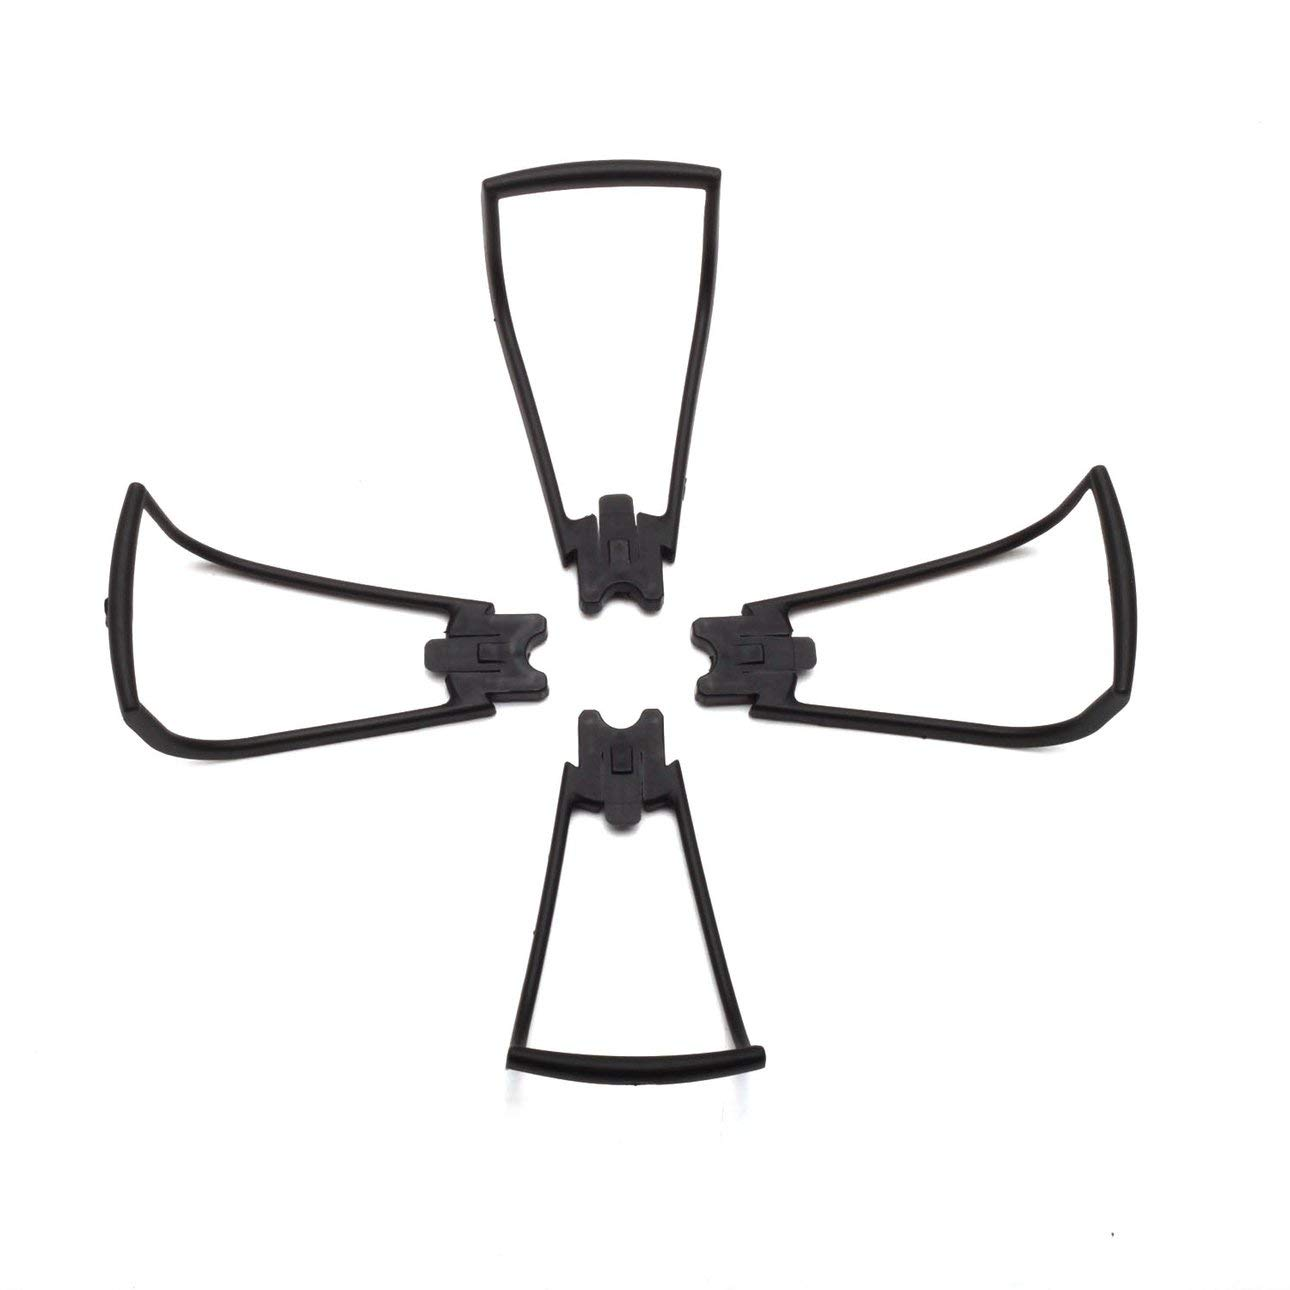 Liobaba Lightweight Propeller Cover for SG700 DM107 4 PCS Propeller Protecting Device RC Quadcopter Accessory Black